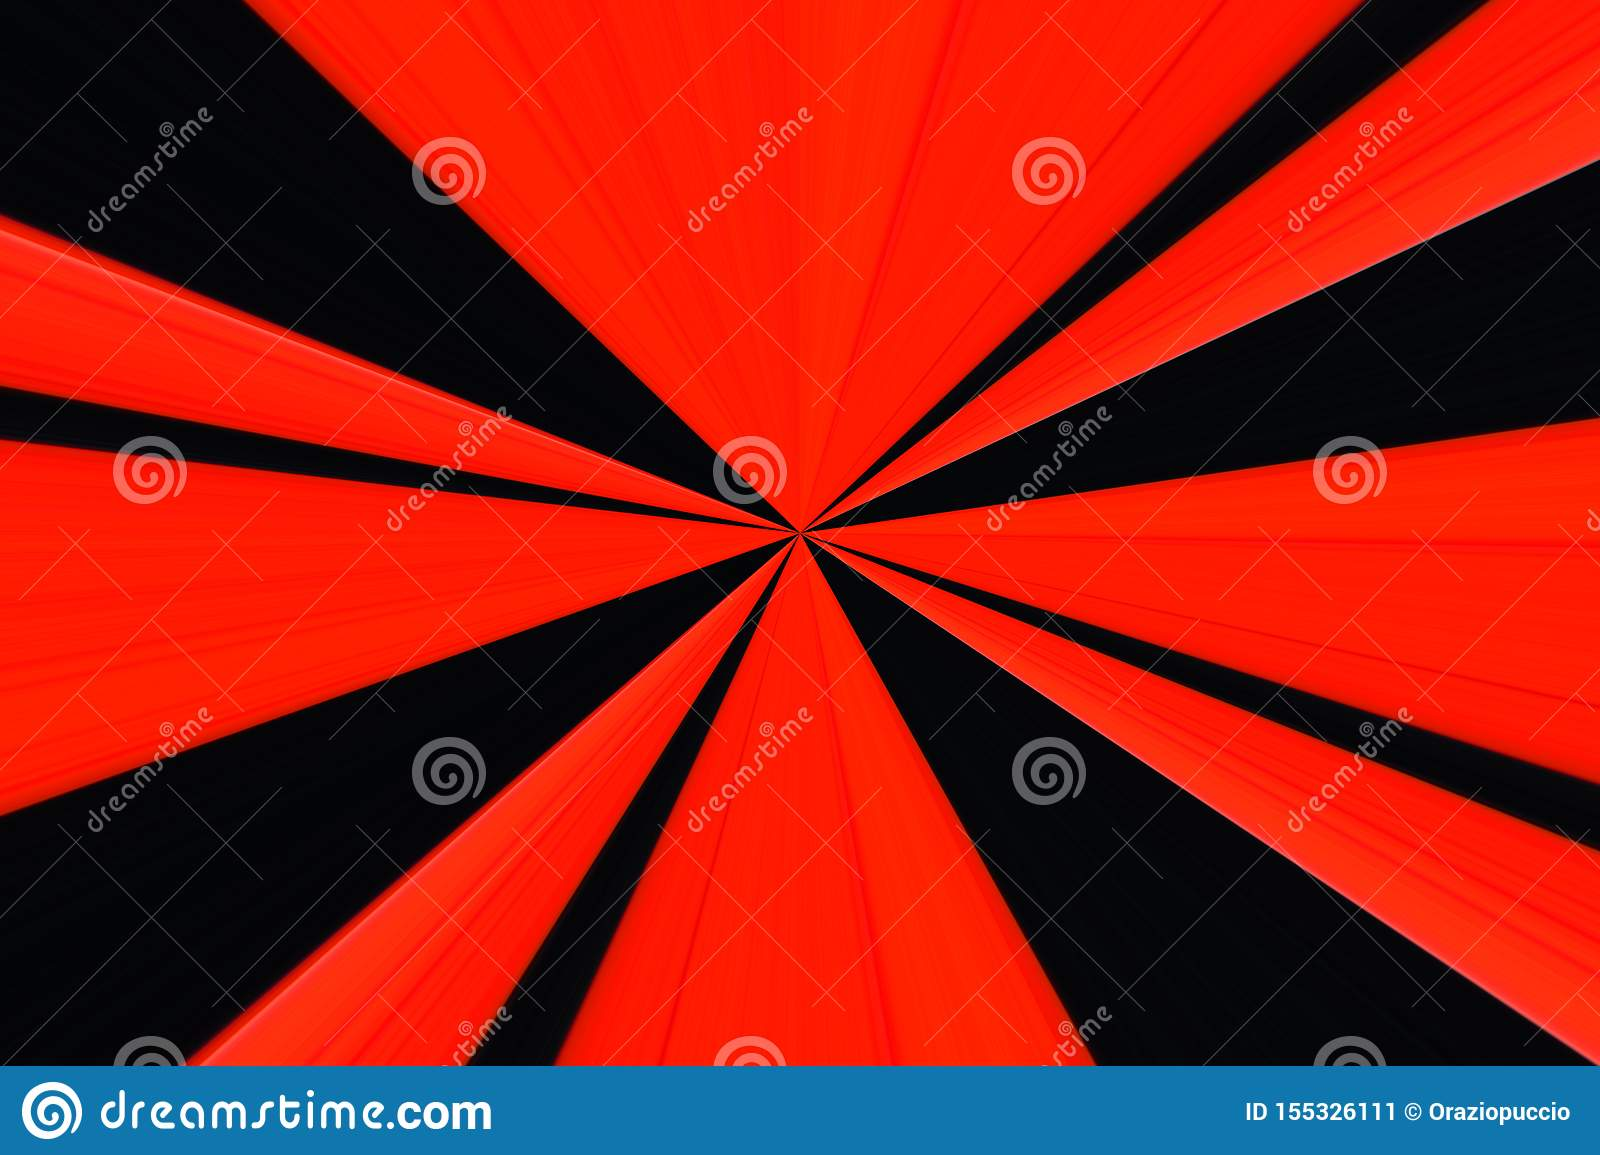 Red And Black Radial Wallpaper Stock Illustration Illustration